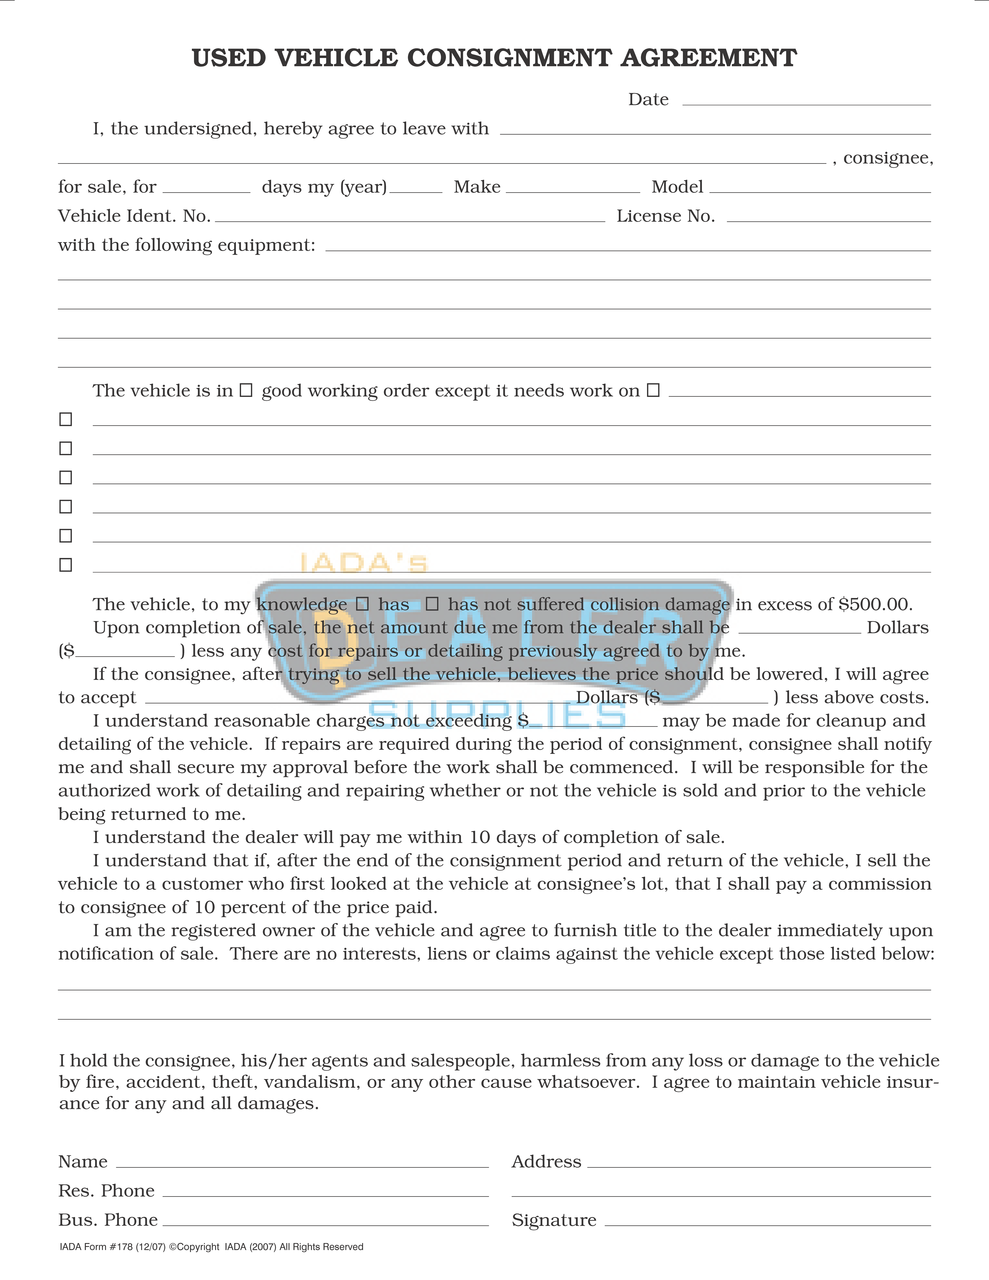 Used Vehicle Consignment Agreement